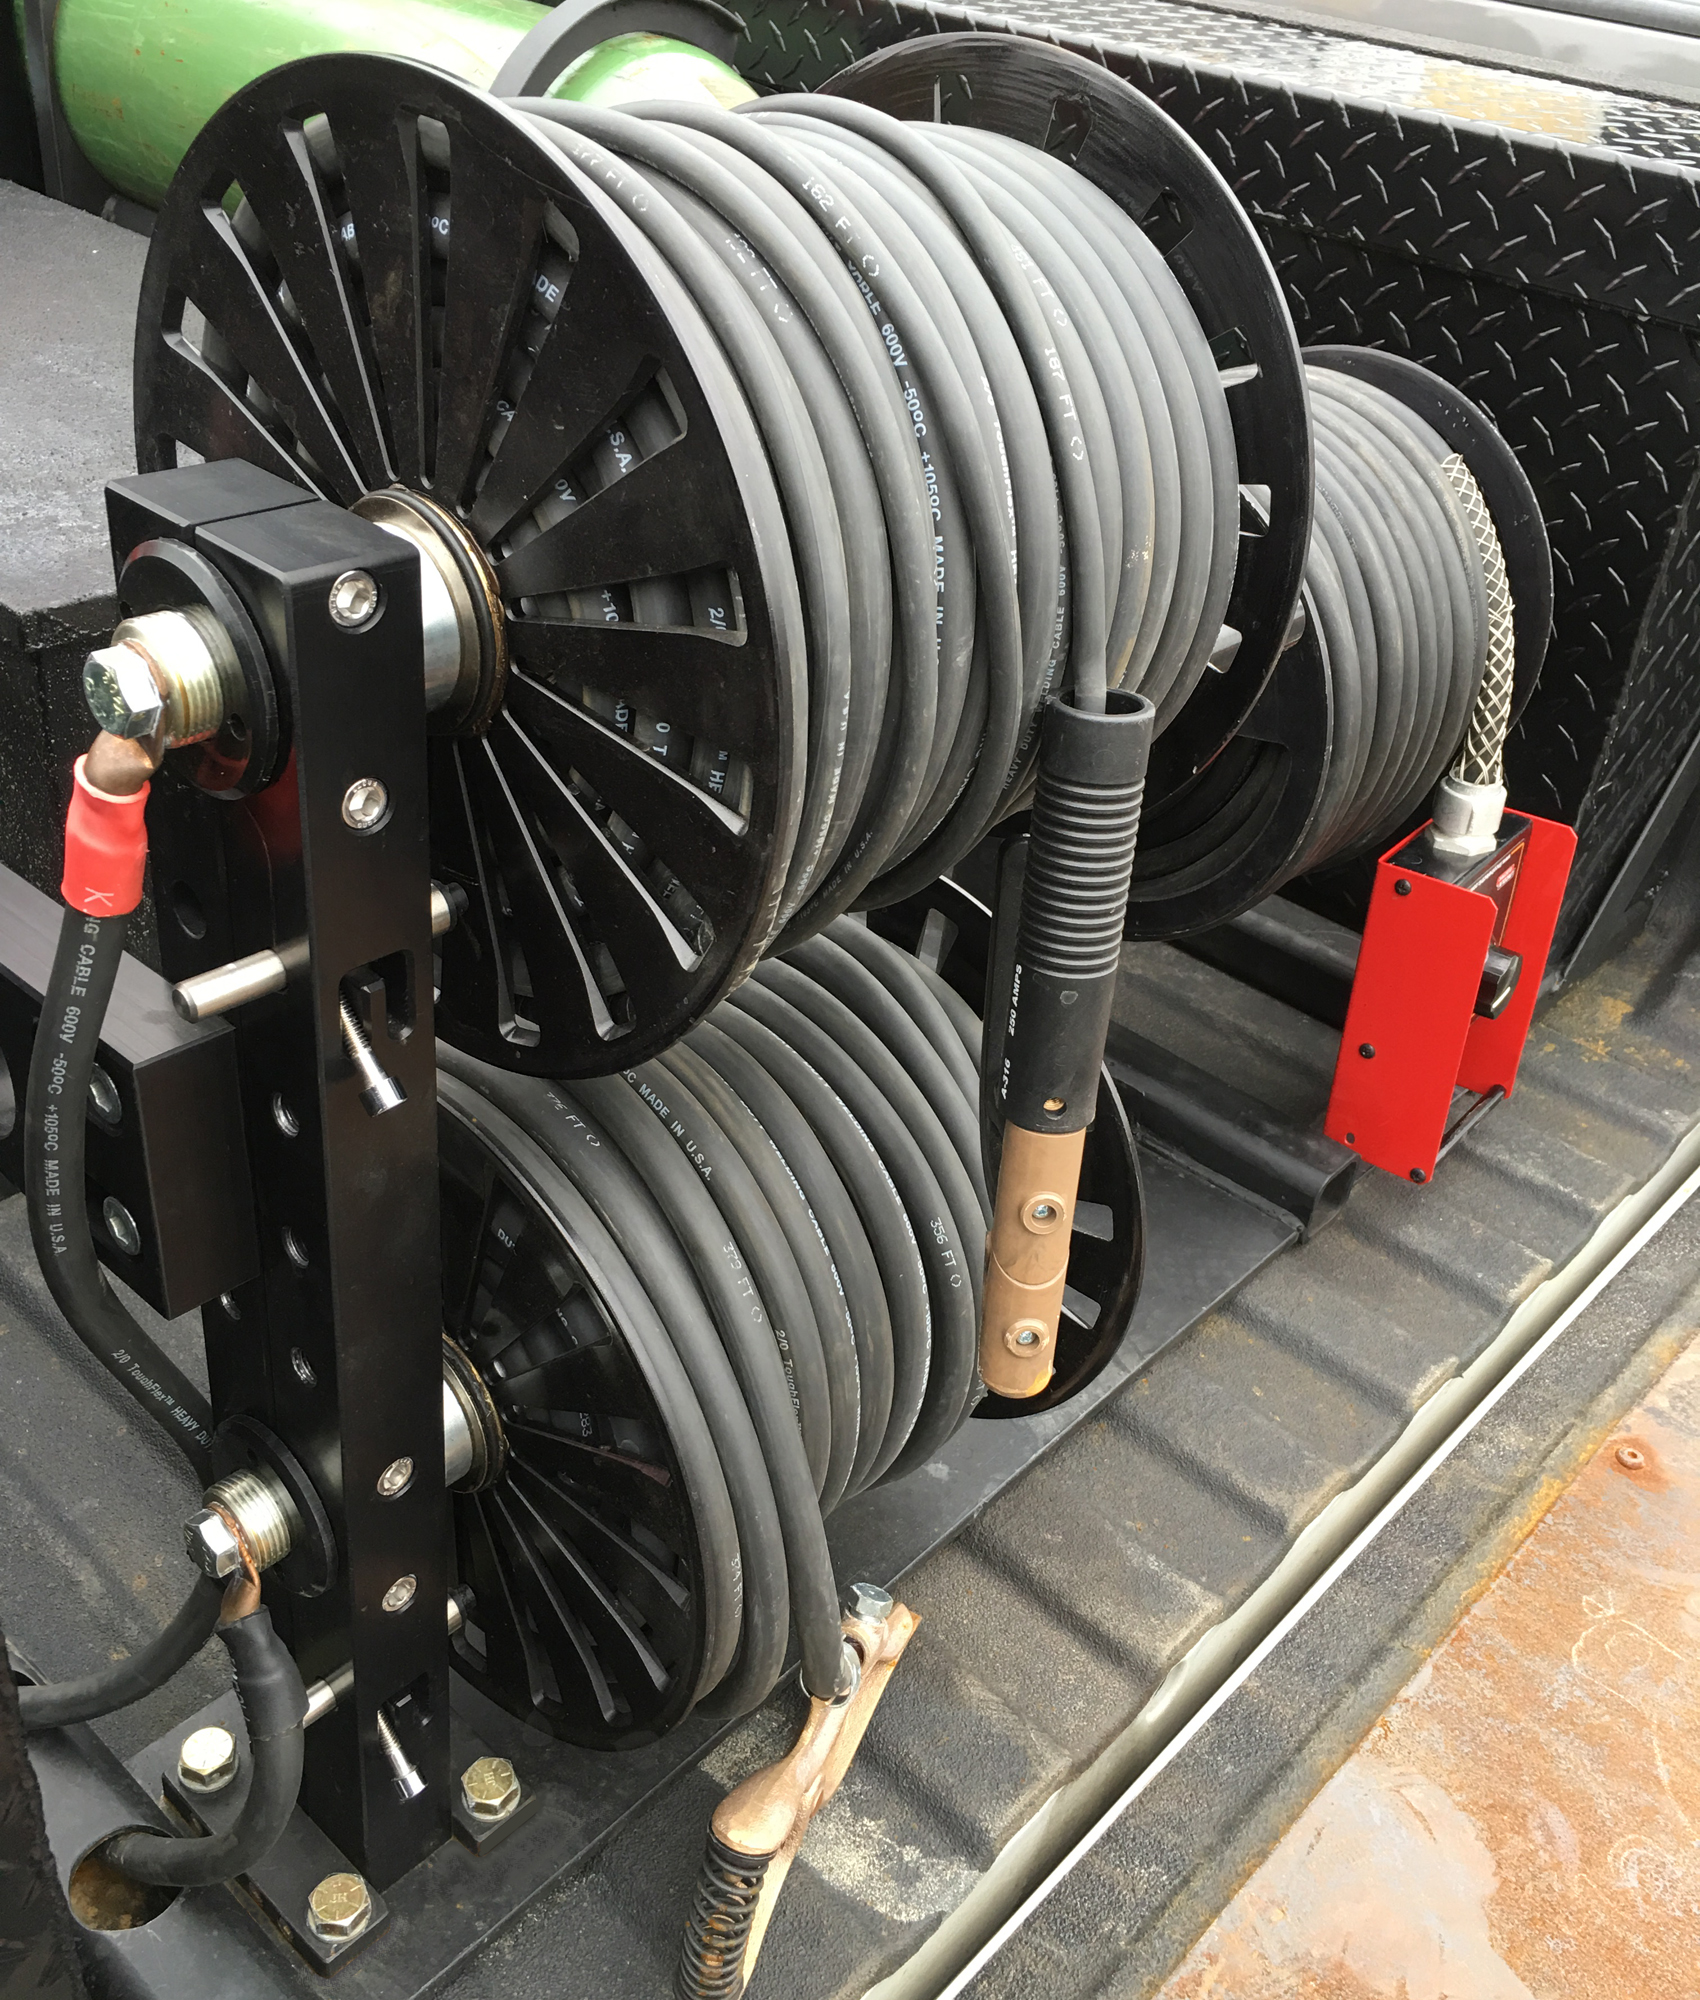 Reel Quality Serious Reels For Serious Welders